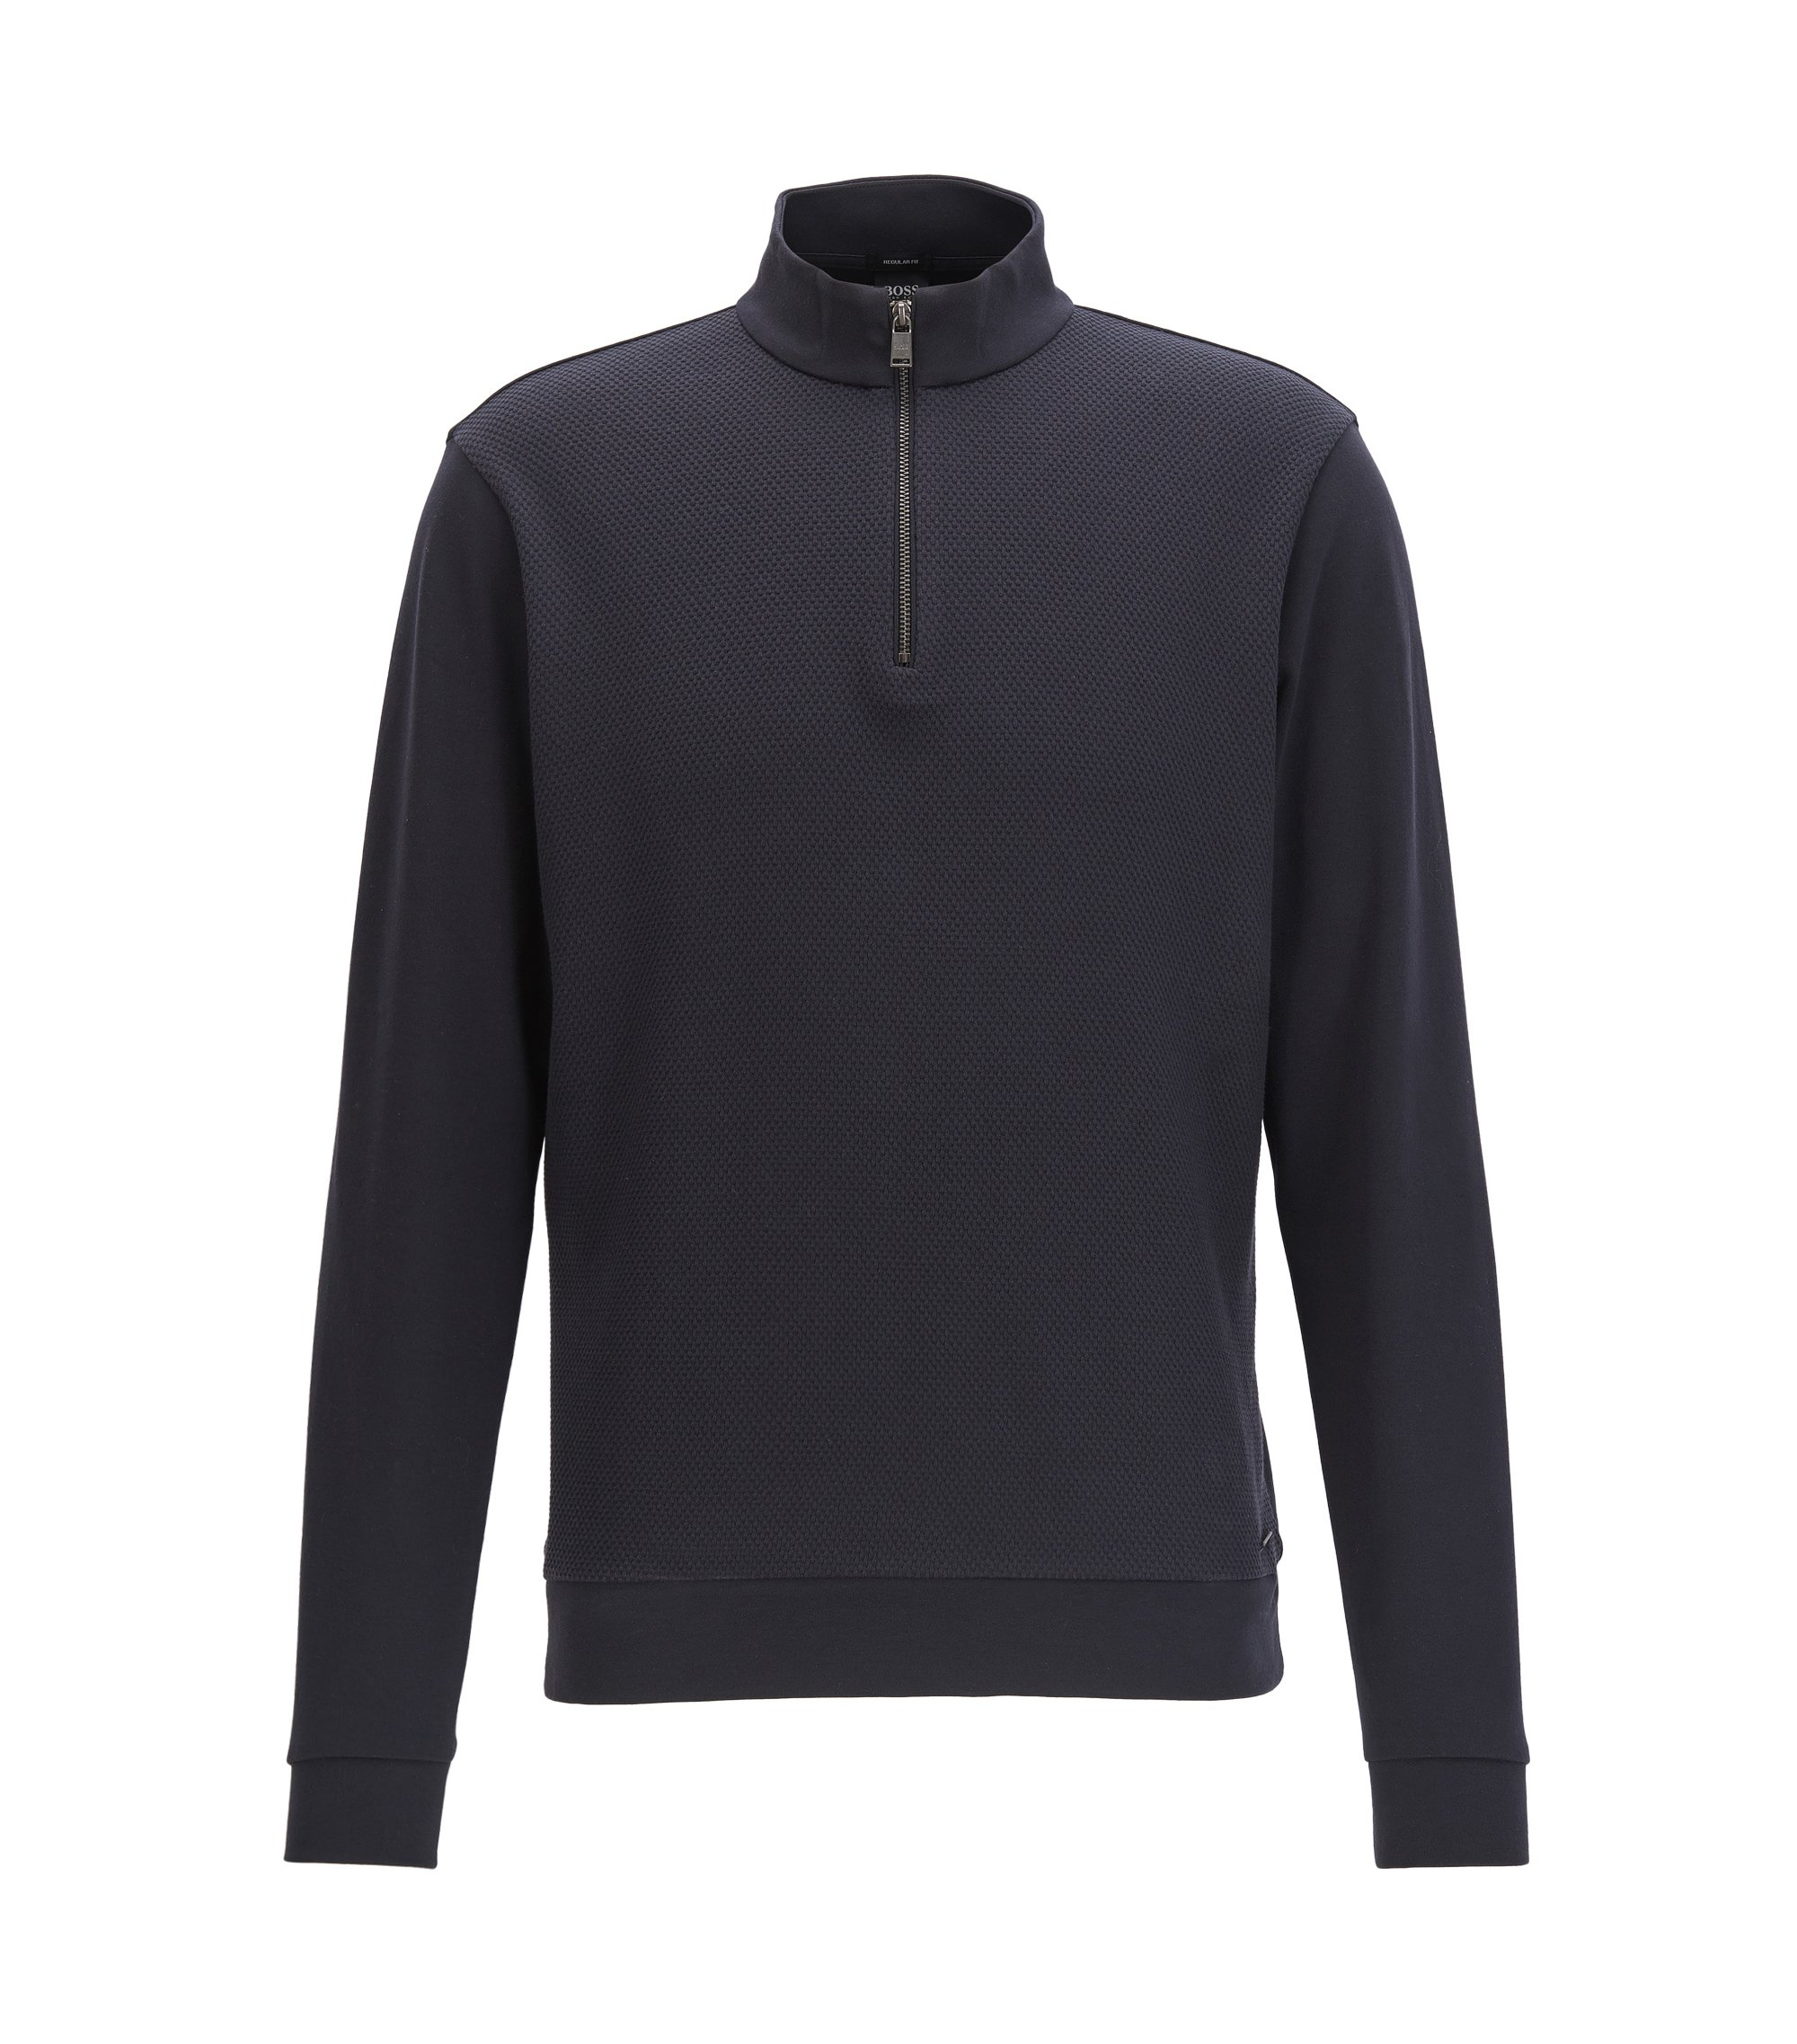 Zip-neck sweatshirt in mercerised cotton, Dark Blue